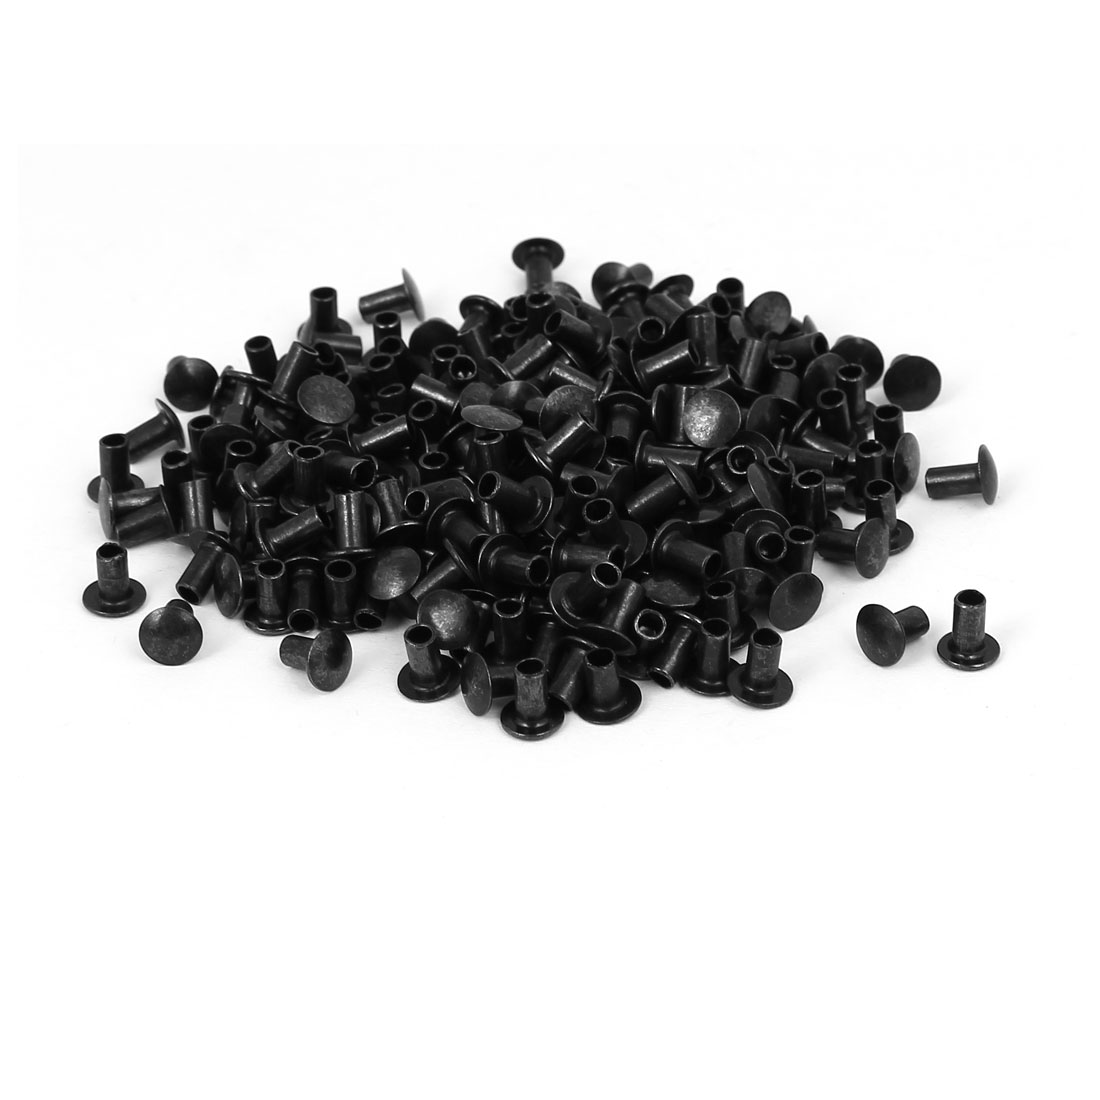 Photo Frame Backboard Metal Hollow Rivet Fastener Black 6mmx6mm 200pcs